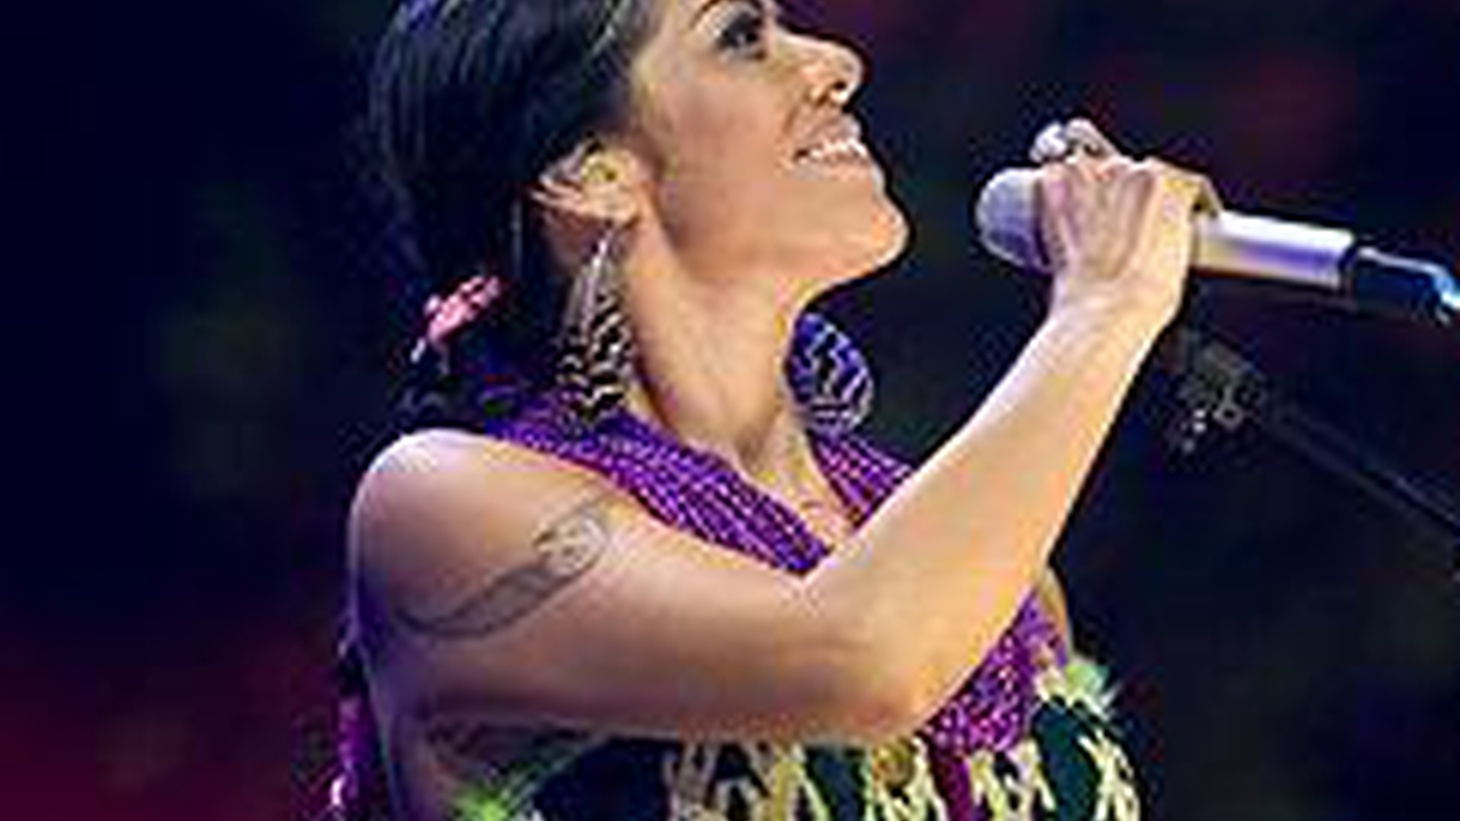 ...from Shake Away.   Lila Downs grew up in Oaxaca and Minneapolis which explains a lot. She can sing jazzy songs in English while lending them a little Latin spice.